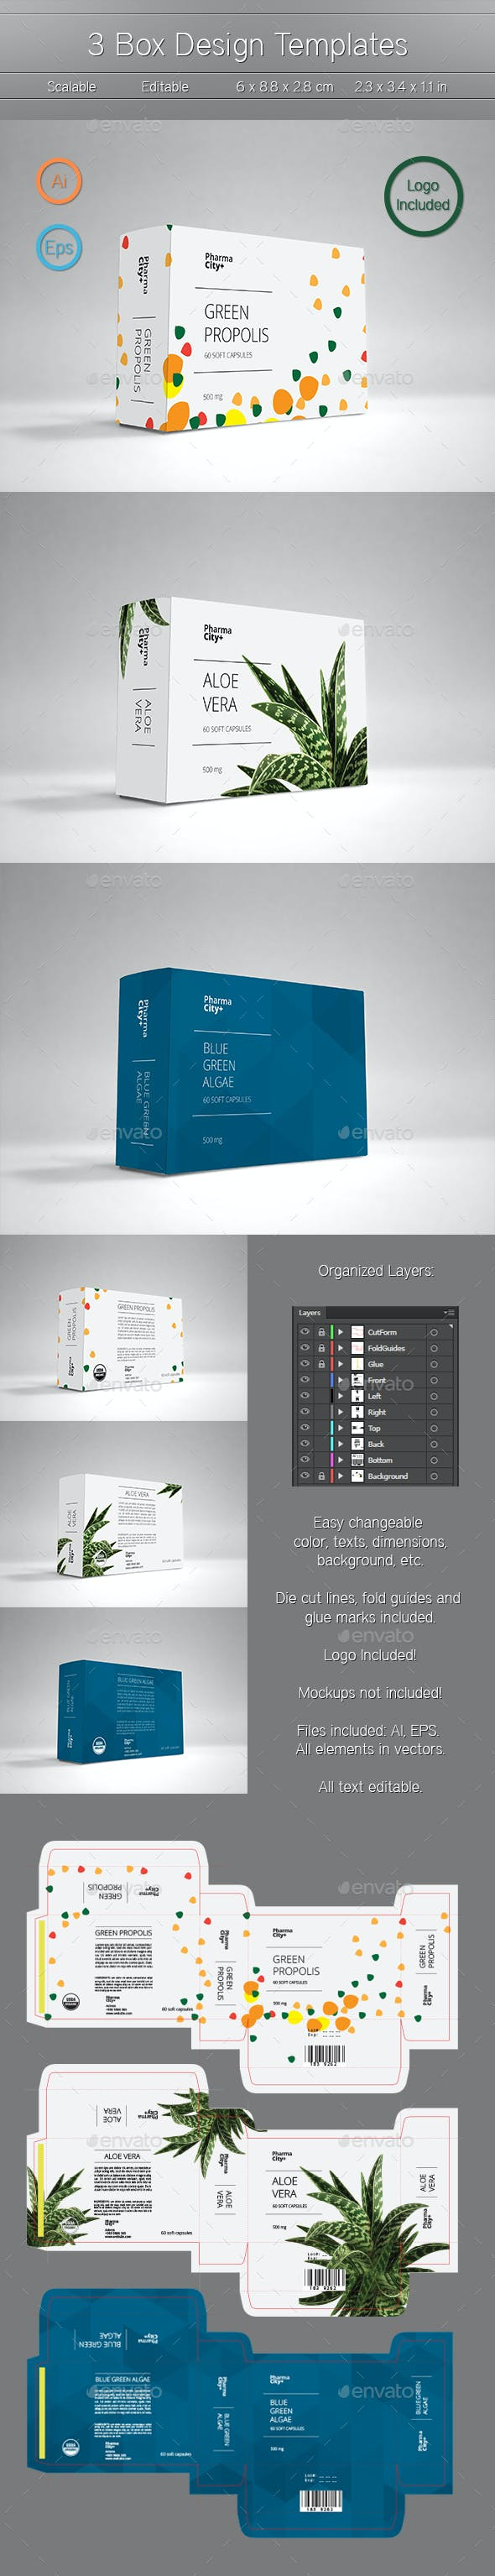 3 box design templates by mihalymm graphicriver